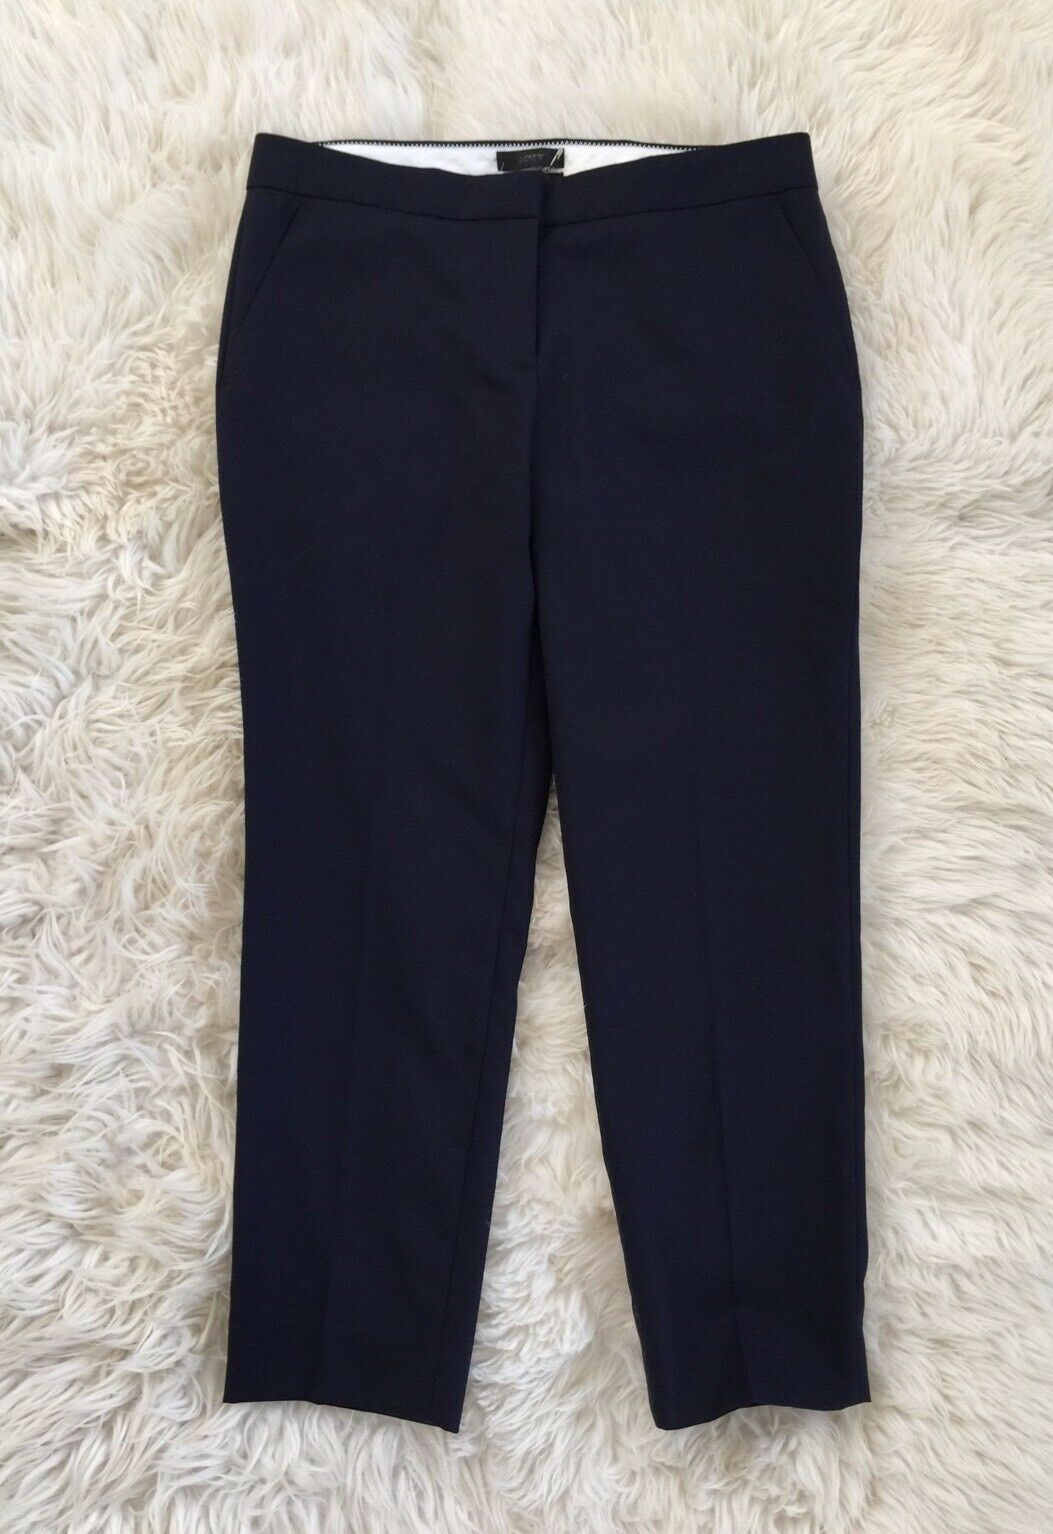 138 NWT JCREW Petite Paley Pants in Super 120s Navy 8P 52406  SPRING '17